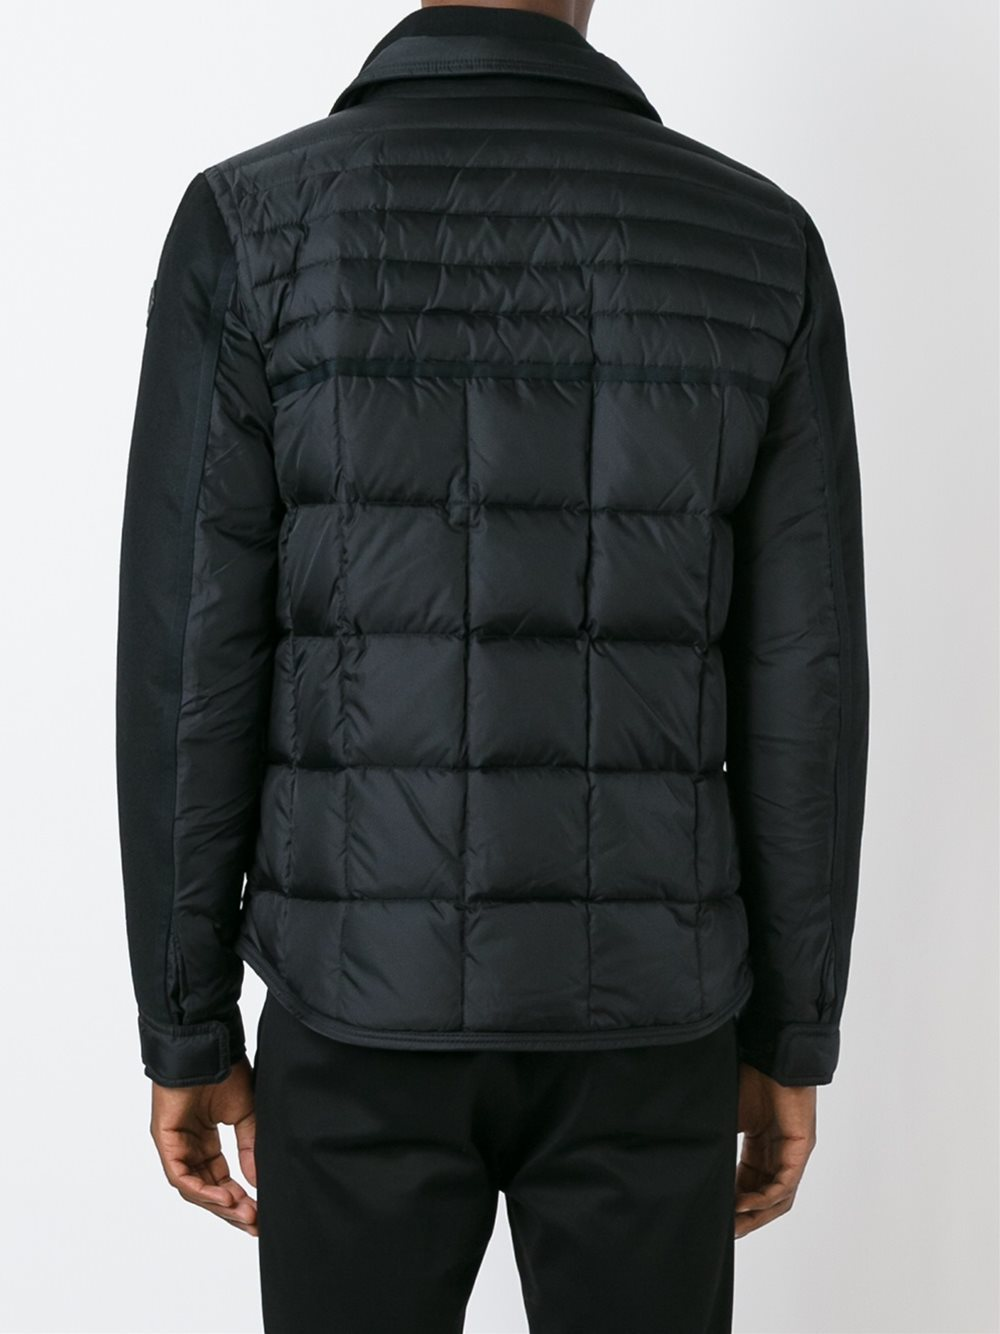 【関税負担】 MONCLER BLAIS DOWN JACKET